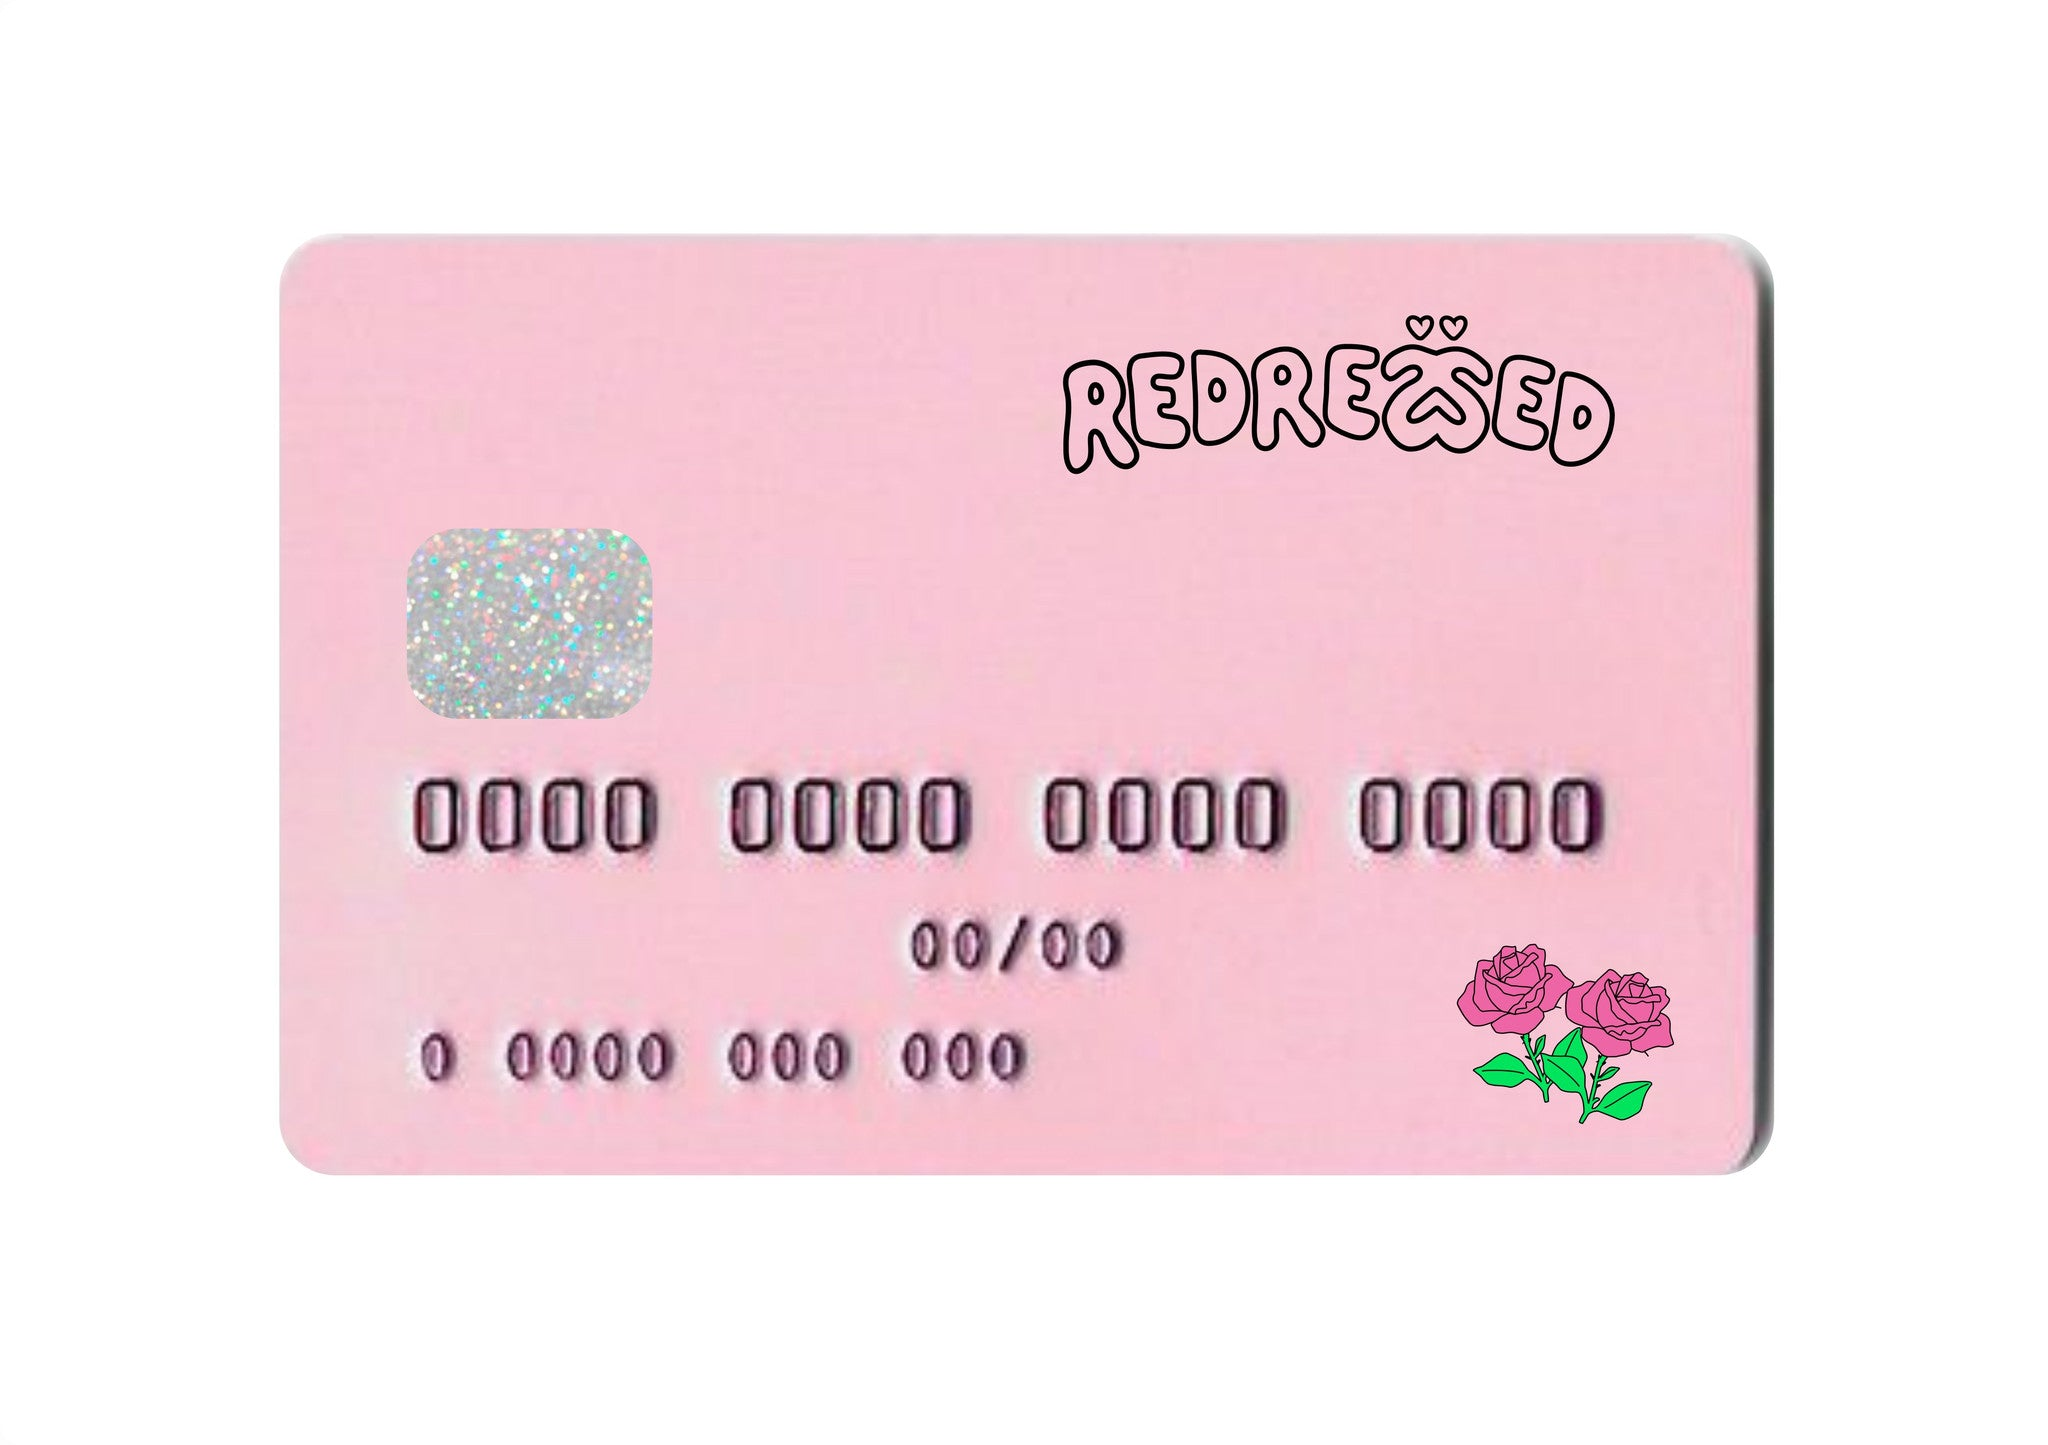 REDRESSED E-GIFT CARD